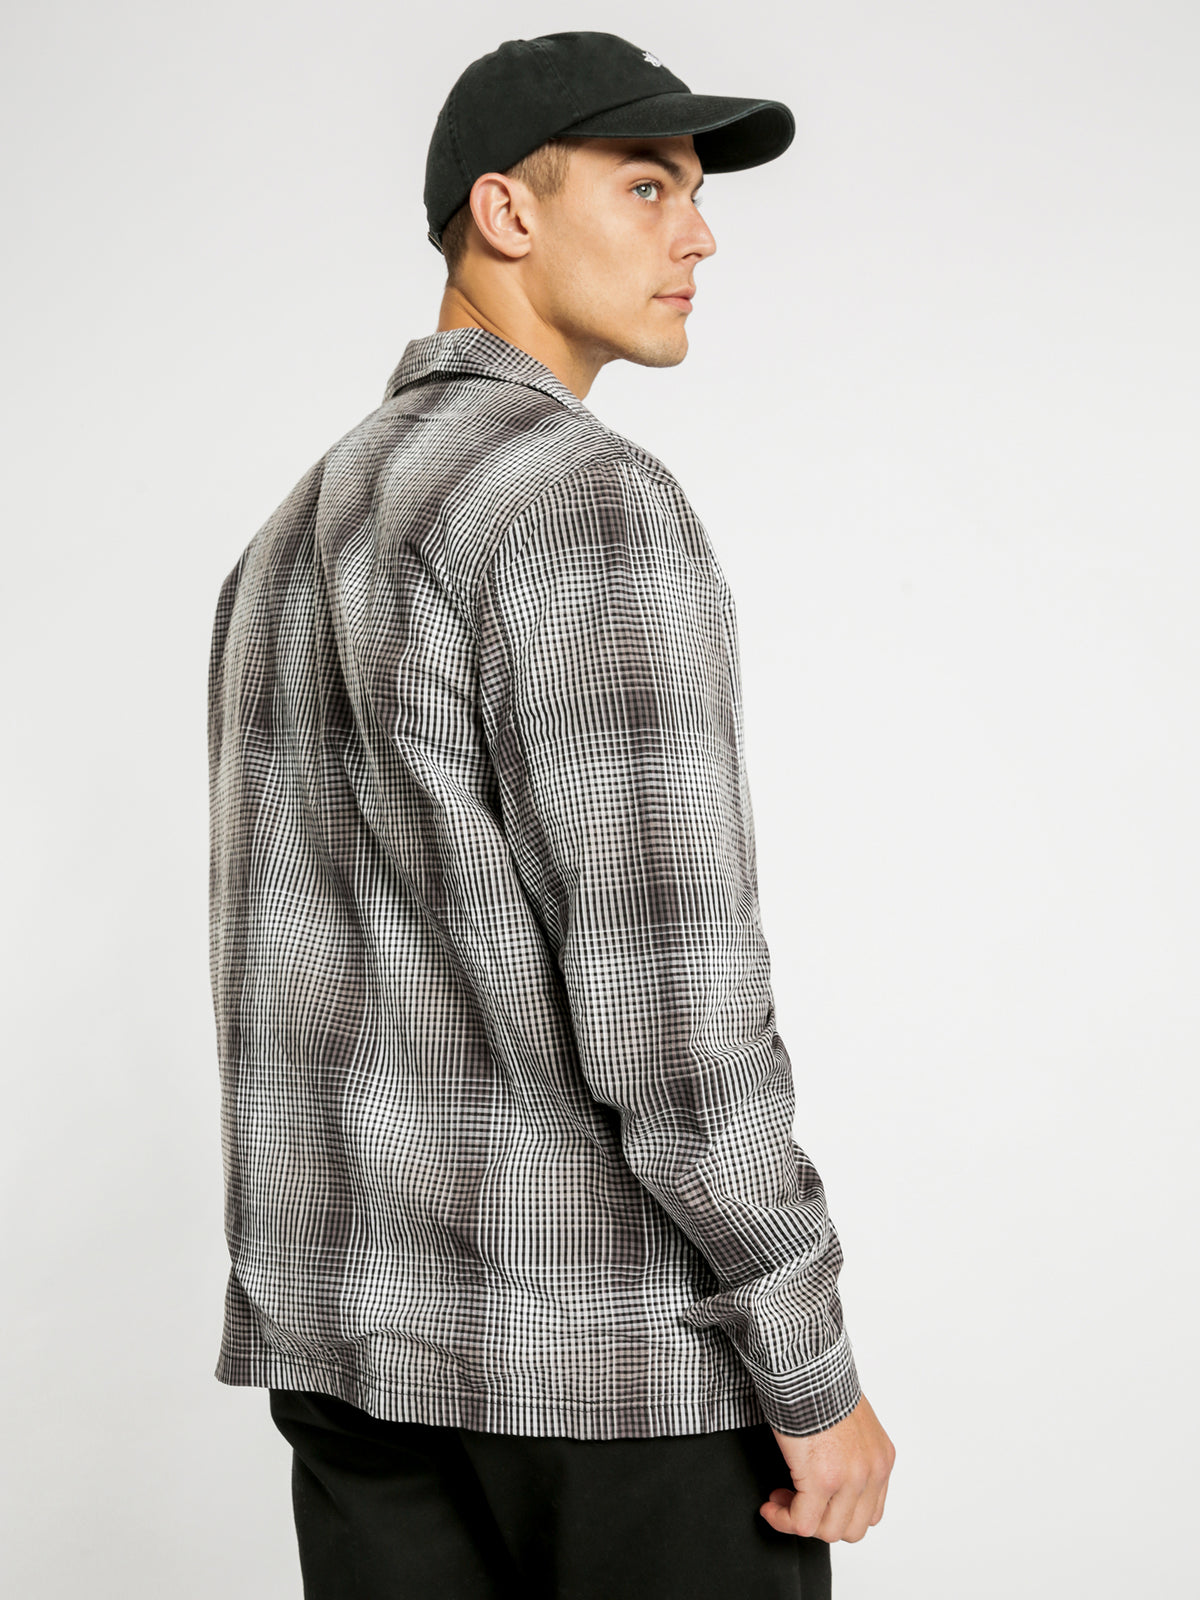 Neat Check Zip Up Long Sleeve Shirt in Black